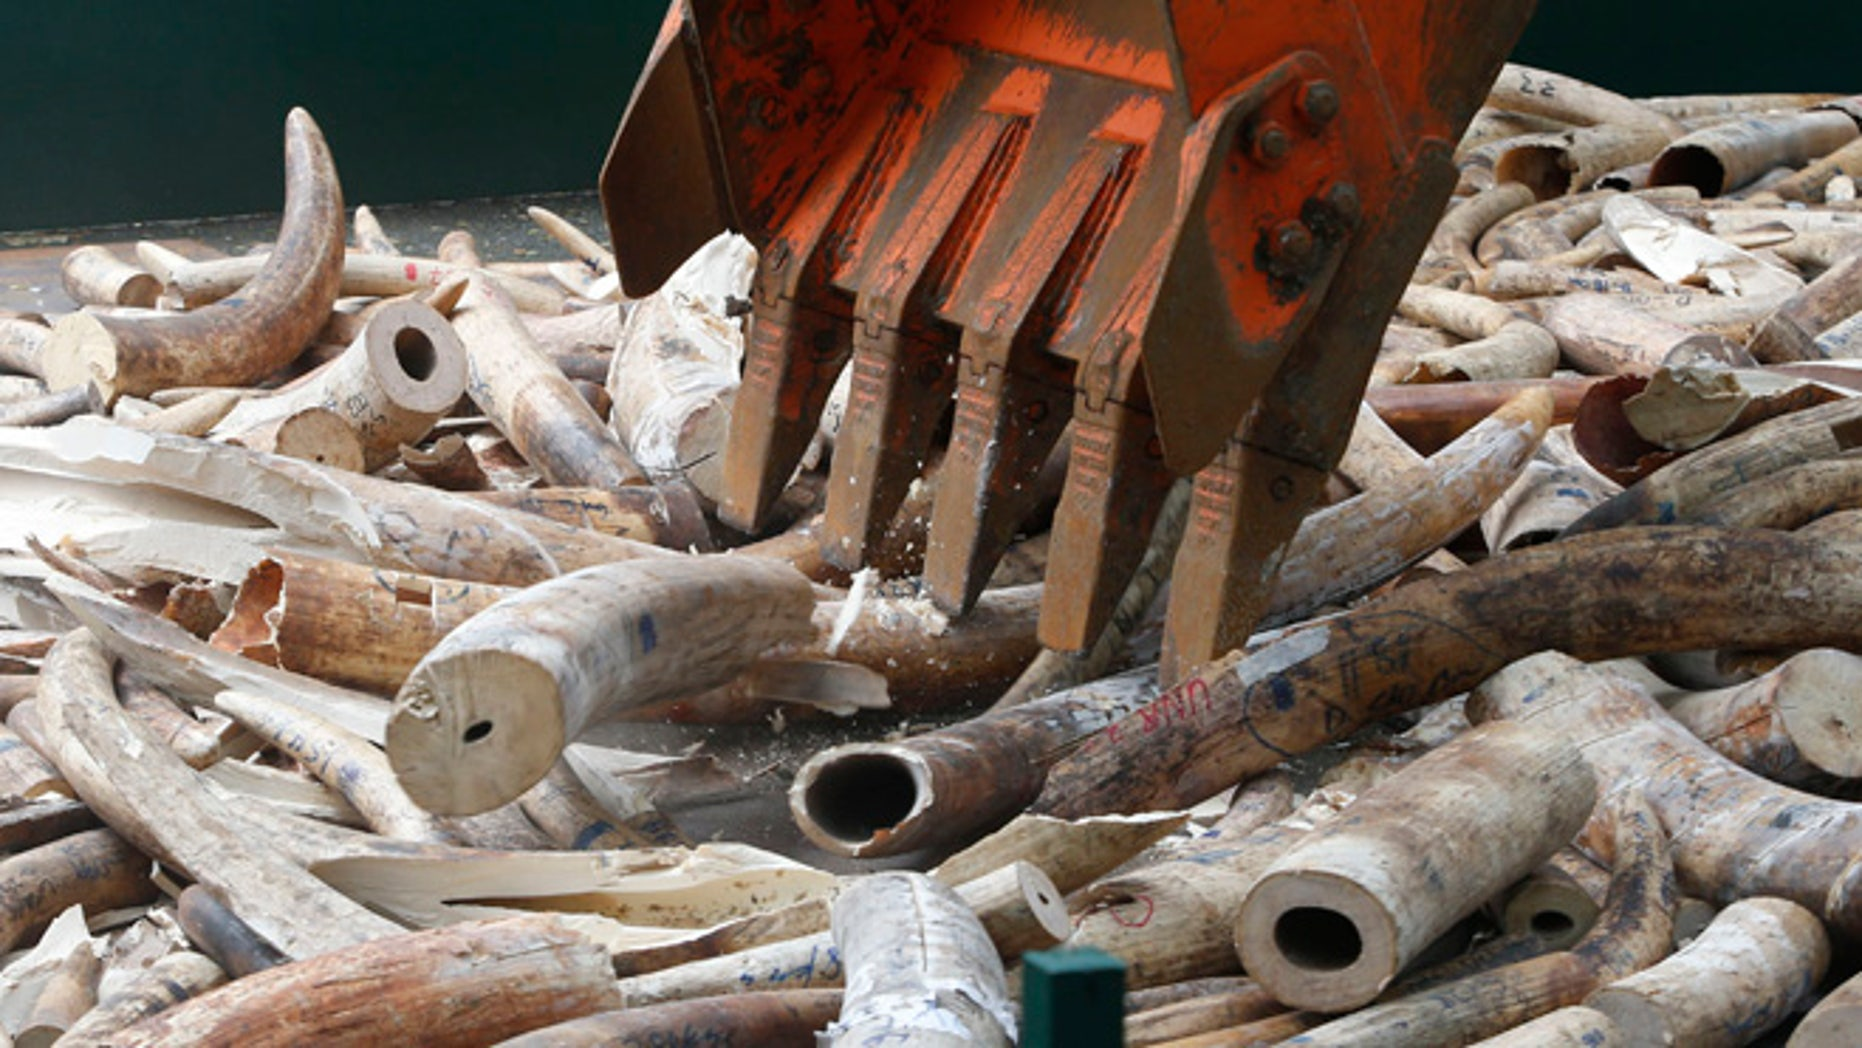 June 21, 2013: A back hoe crushes confiscated smuggled elephant tusks at the Parks and Wildlife center in Quezon City, Metro Manila.